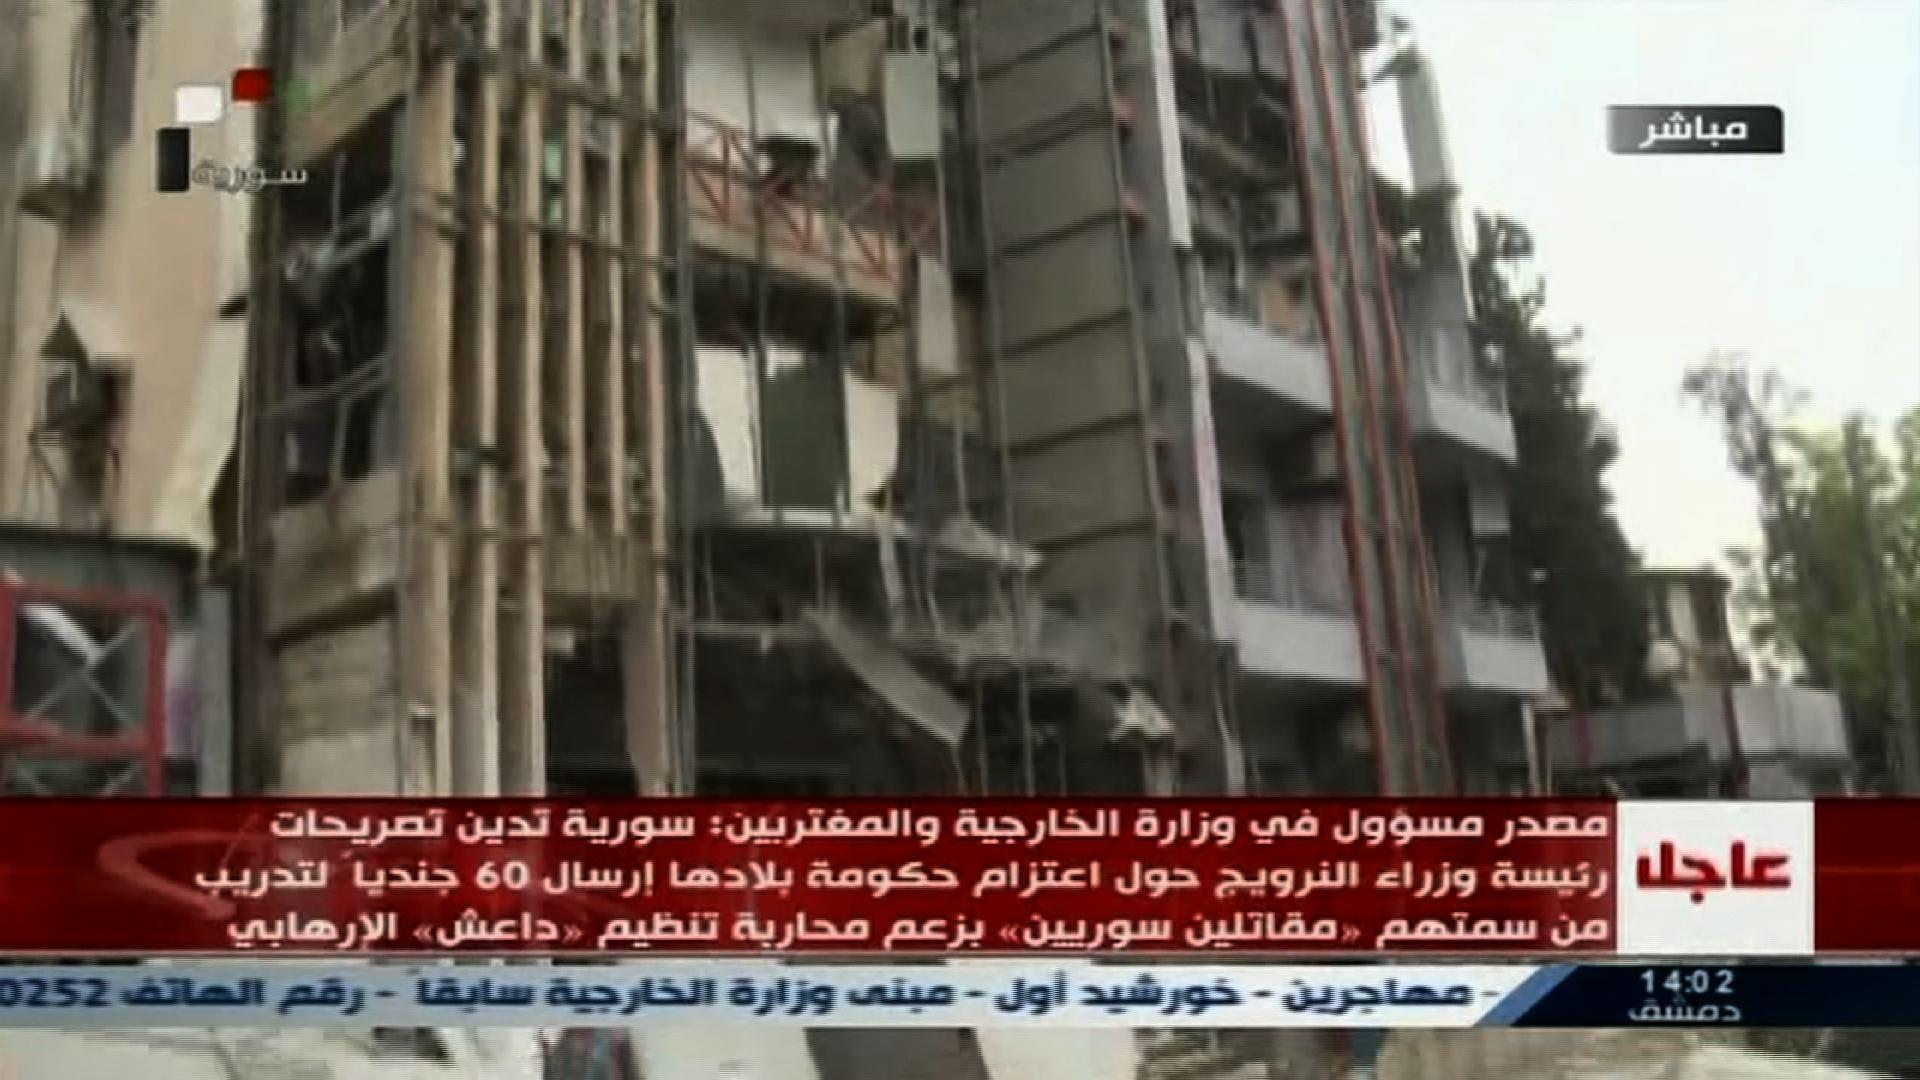 Syria TV: Opposition Rocket Hits Aleppo Hospital